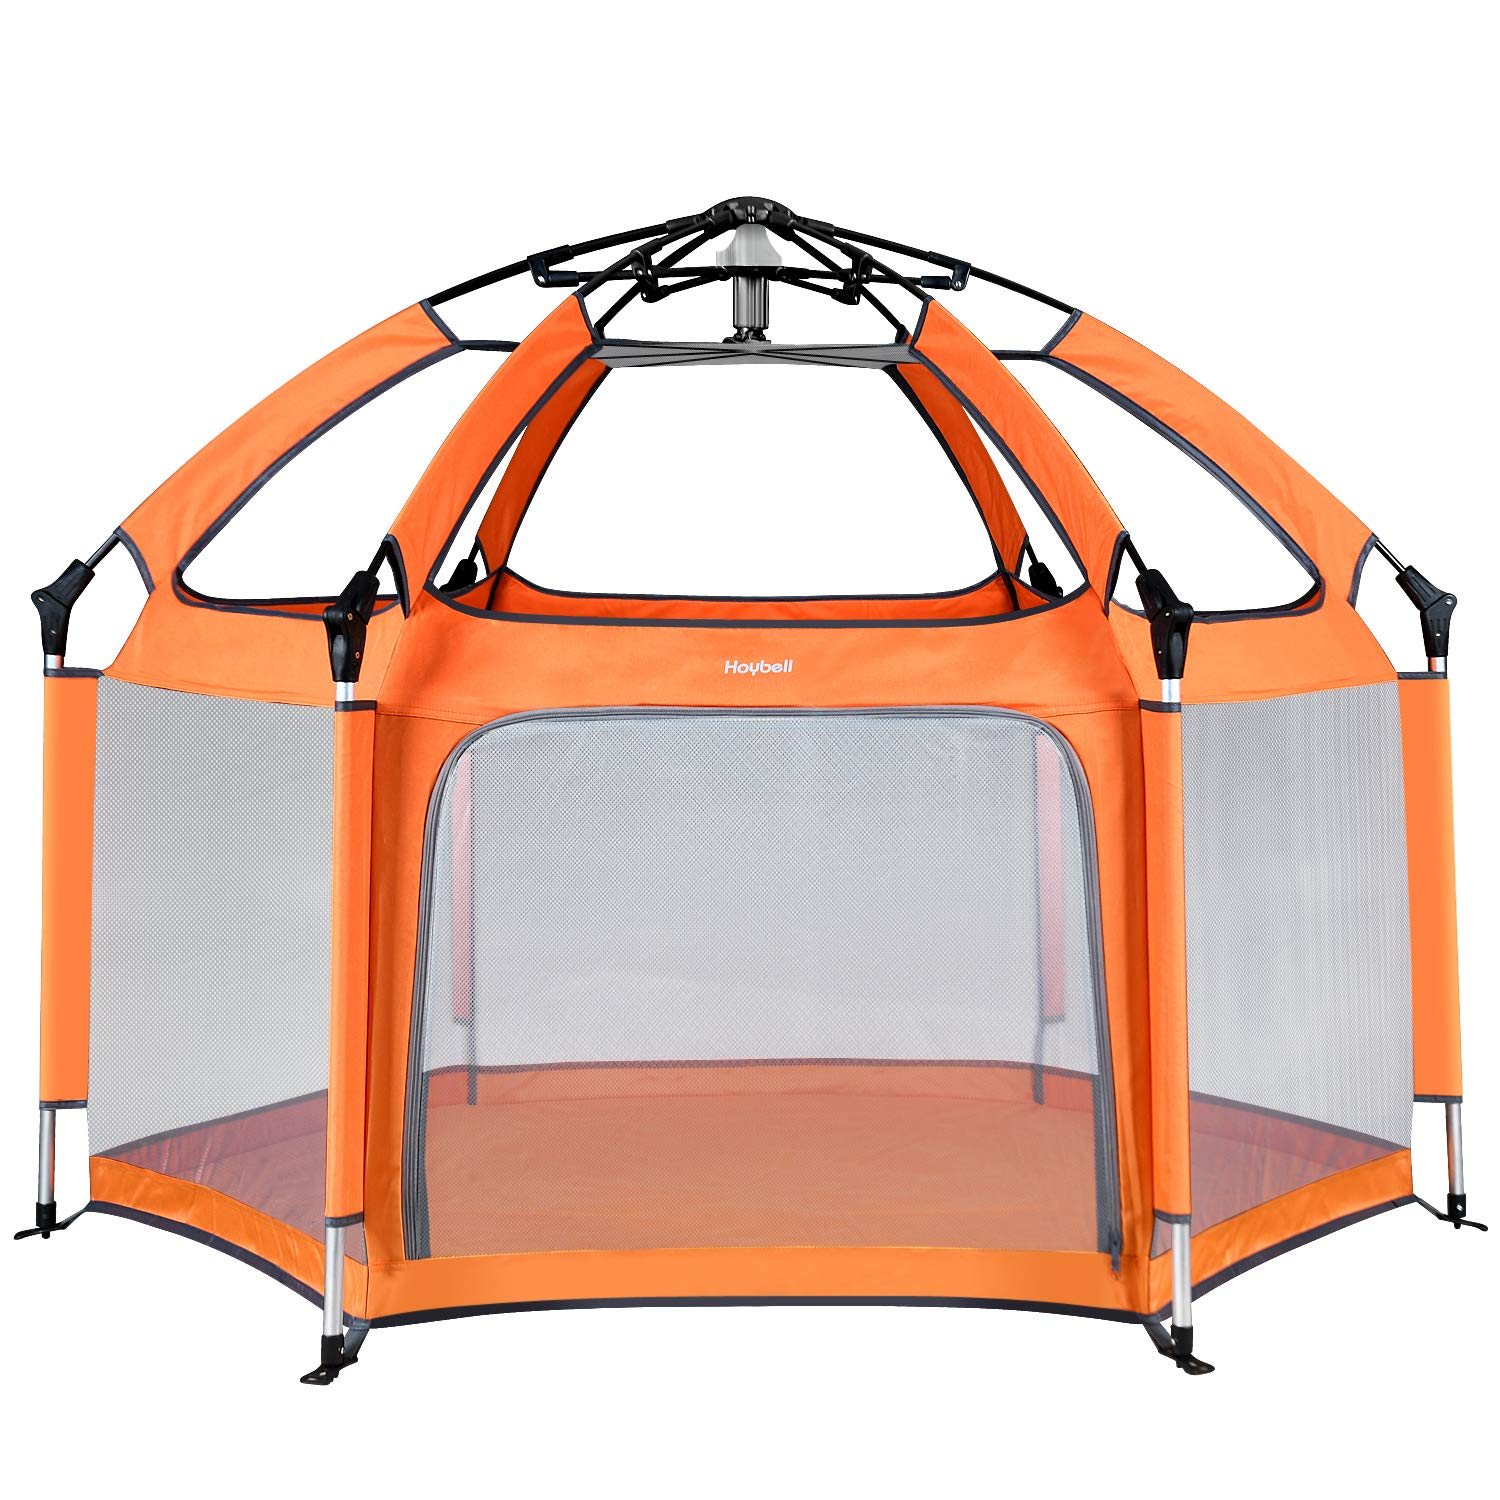 Hoybell Baby Playpen, Portable Playard Indoor and Outdoor, Safety Lock, Washable 6-Panel Kids Playpen with Carry Case, Canopy – Orange